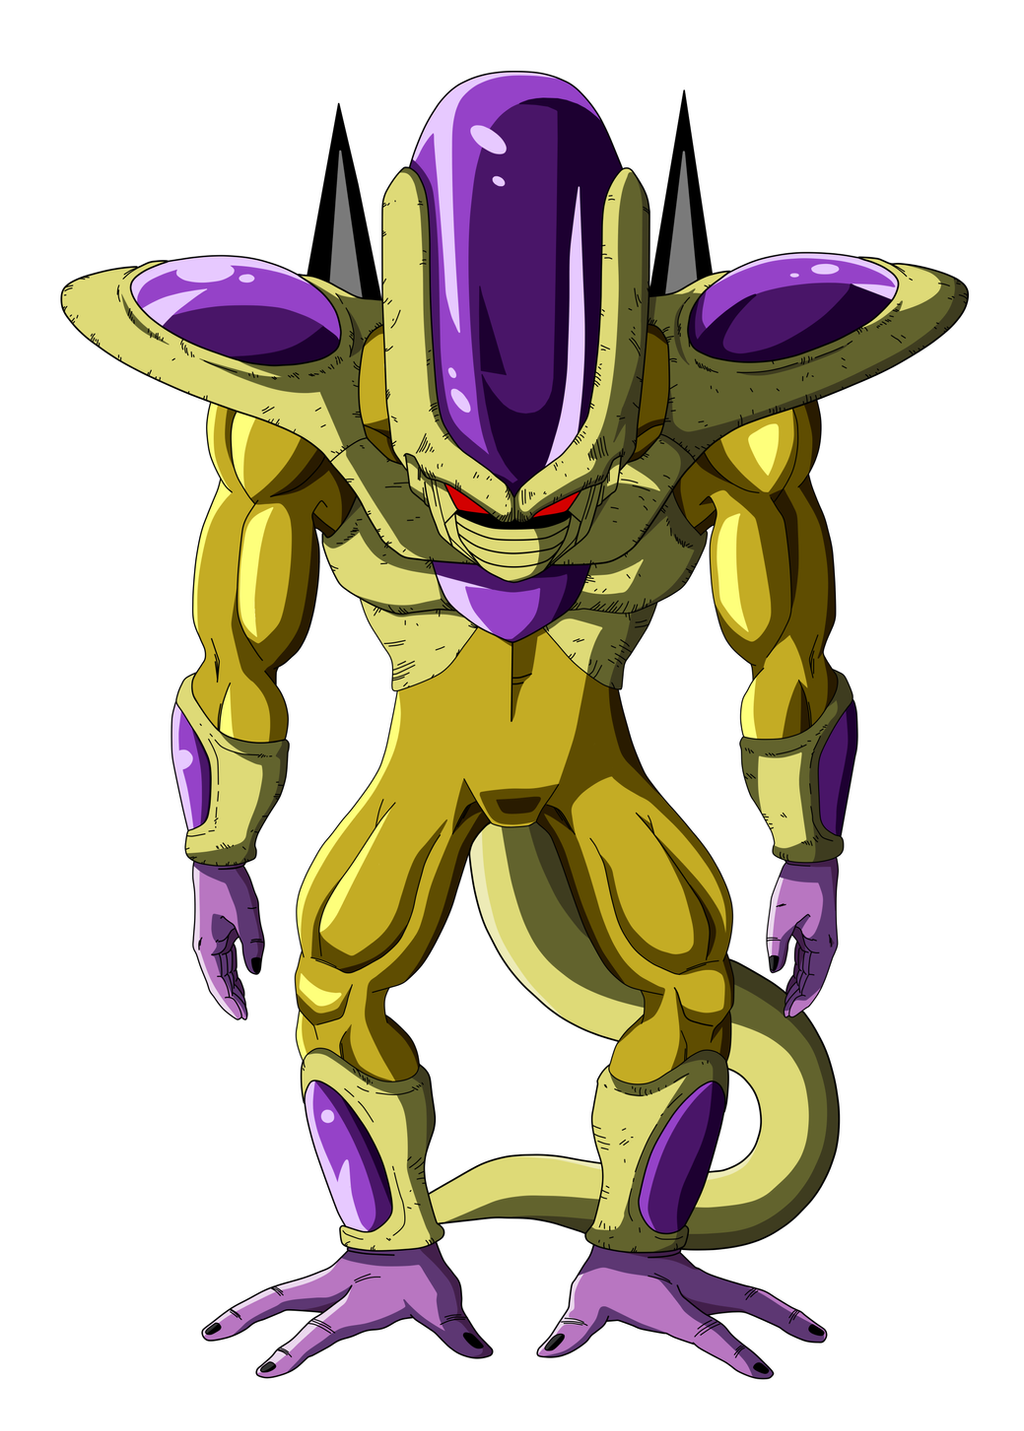 Golden Frieza 6th Form by ryokia96 on DeviantArt